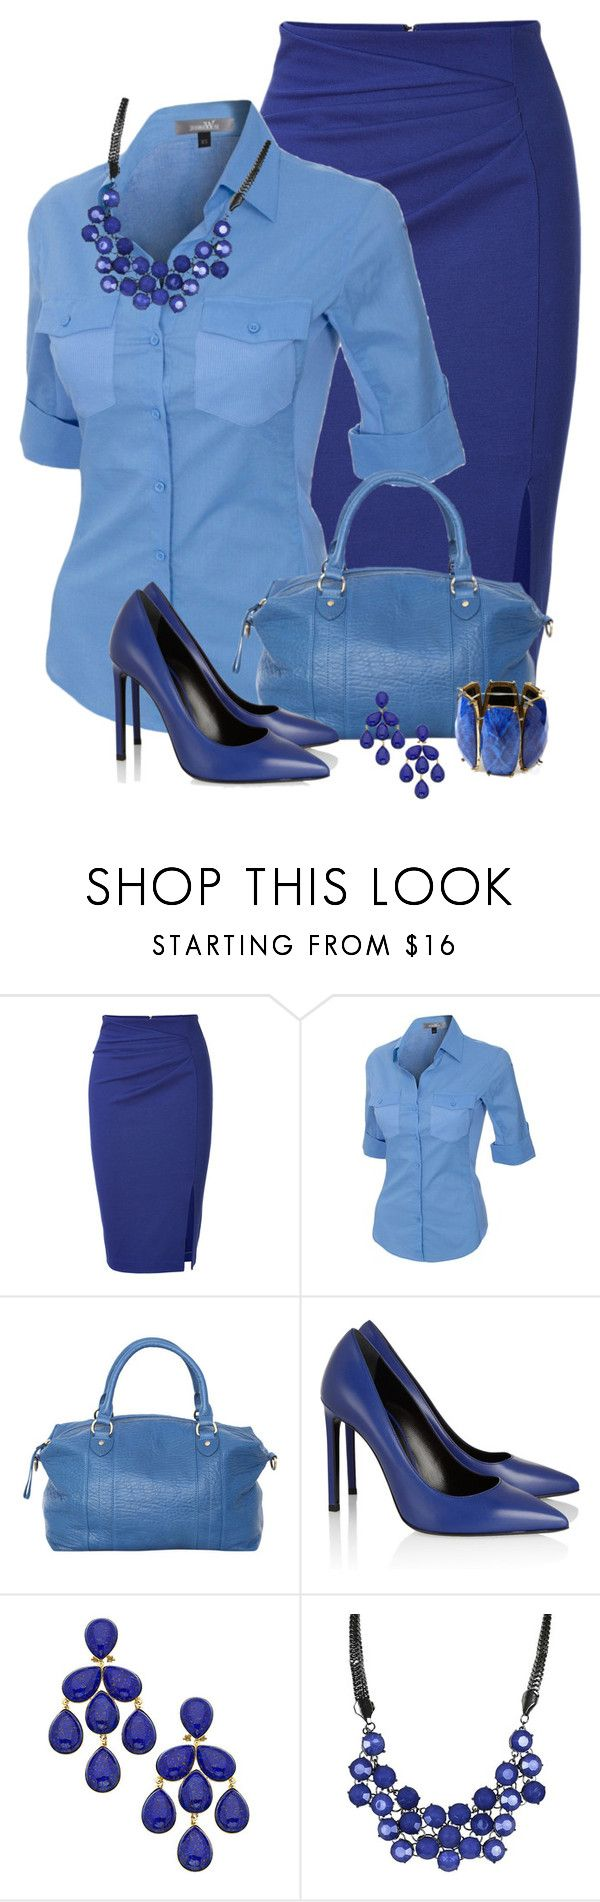 """Untitled #674"" by twinkle0088 ❤ liked on Polyvore featuring Blumarine, Status Anxiety, Yves Saint Laurent, Roberta Chiarella and Amrita Singh"